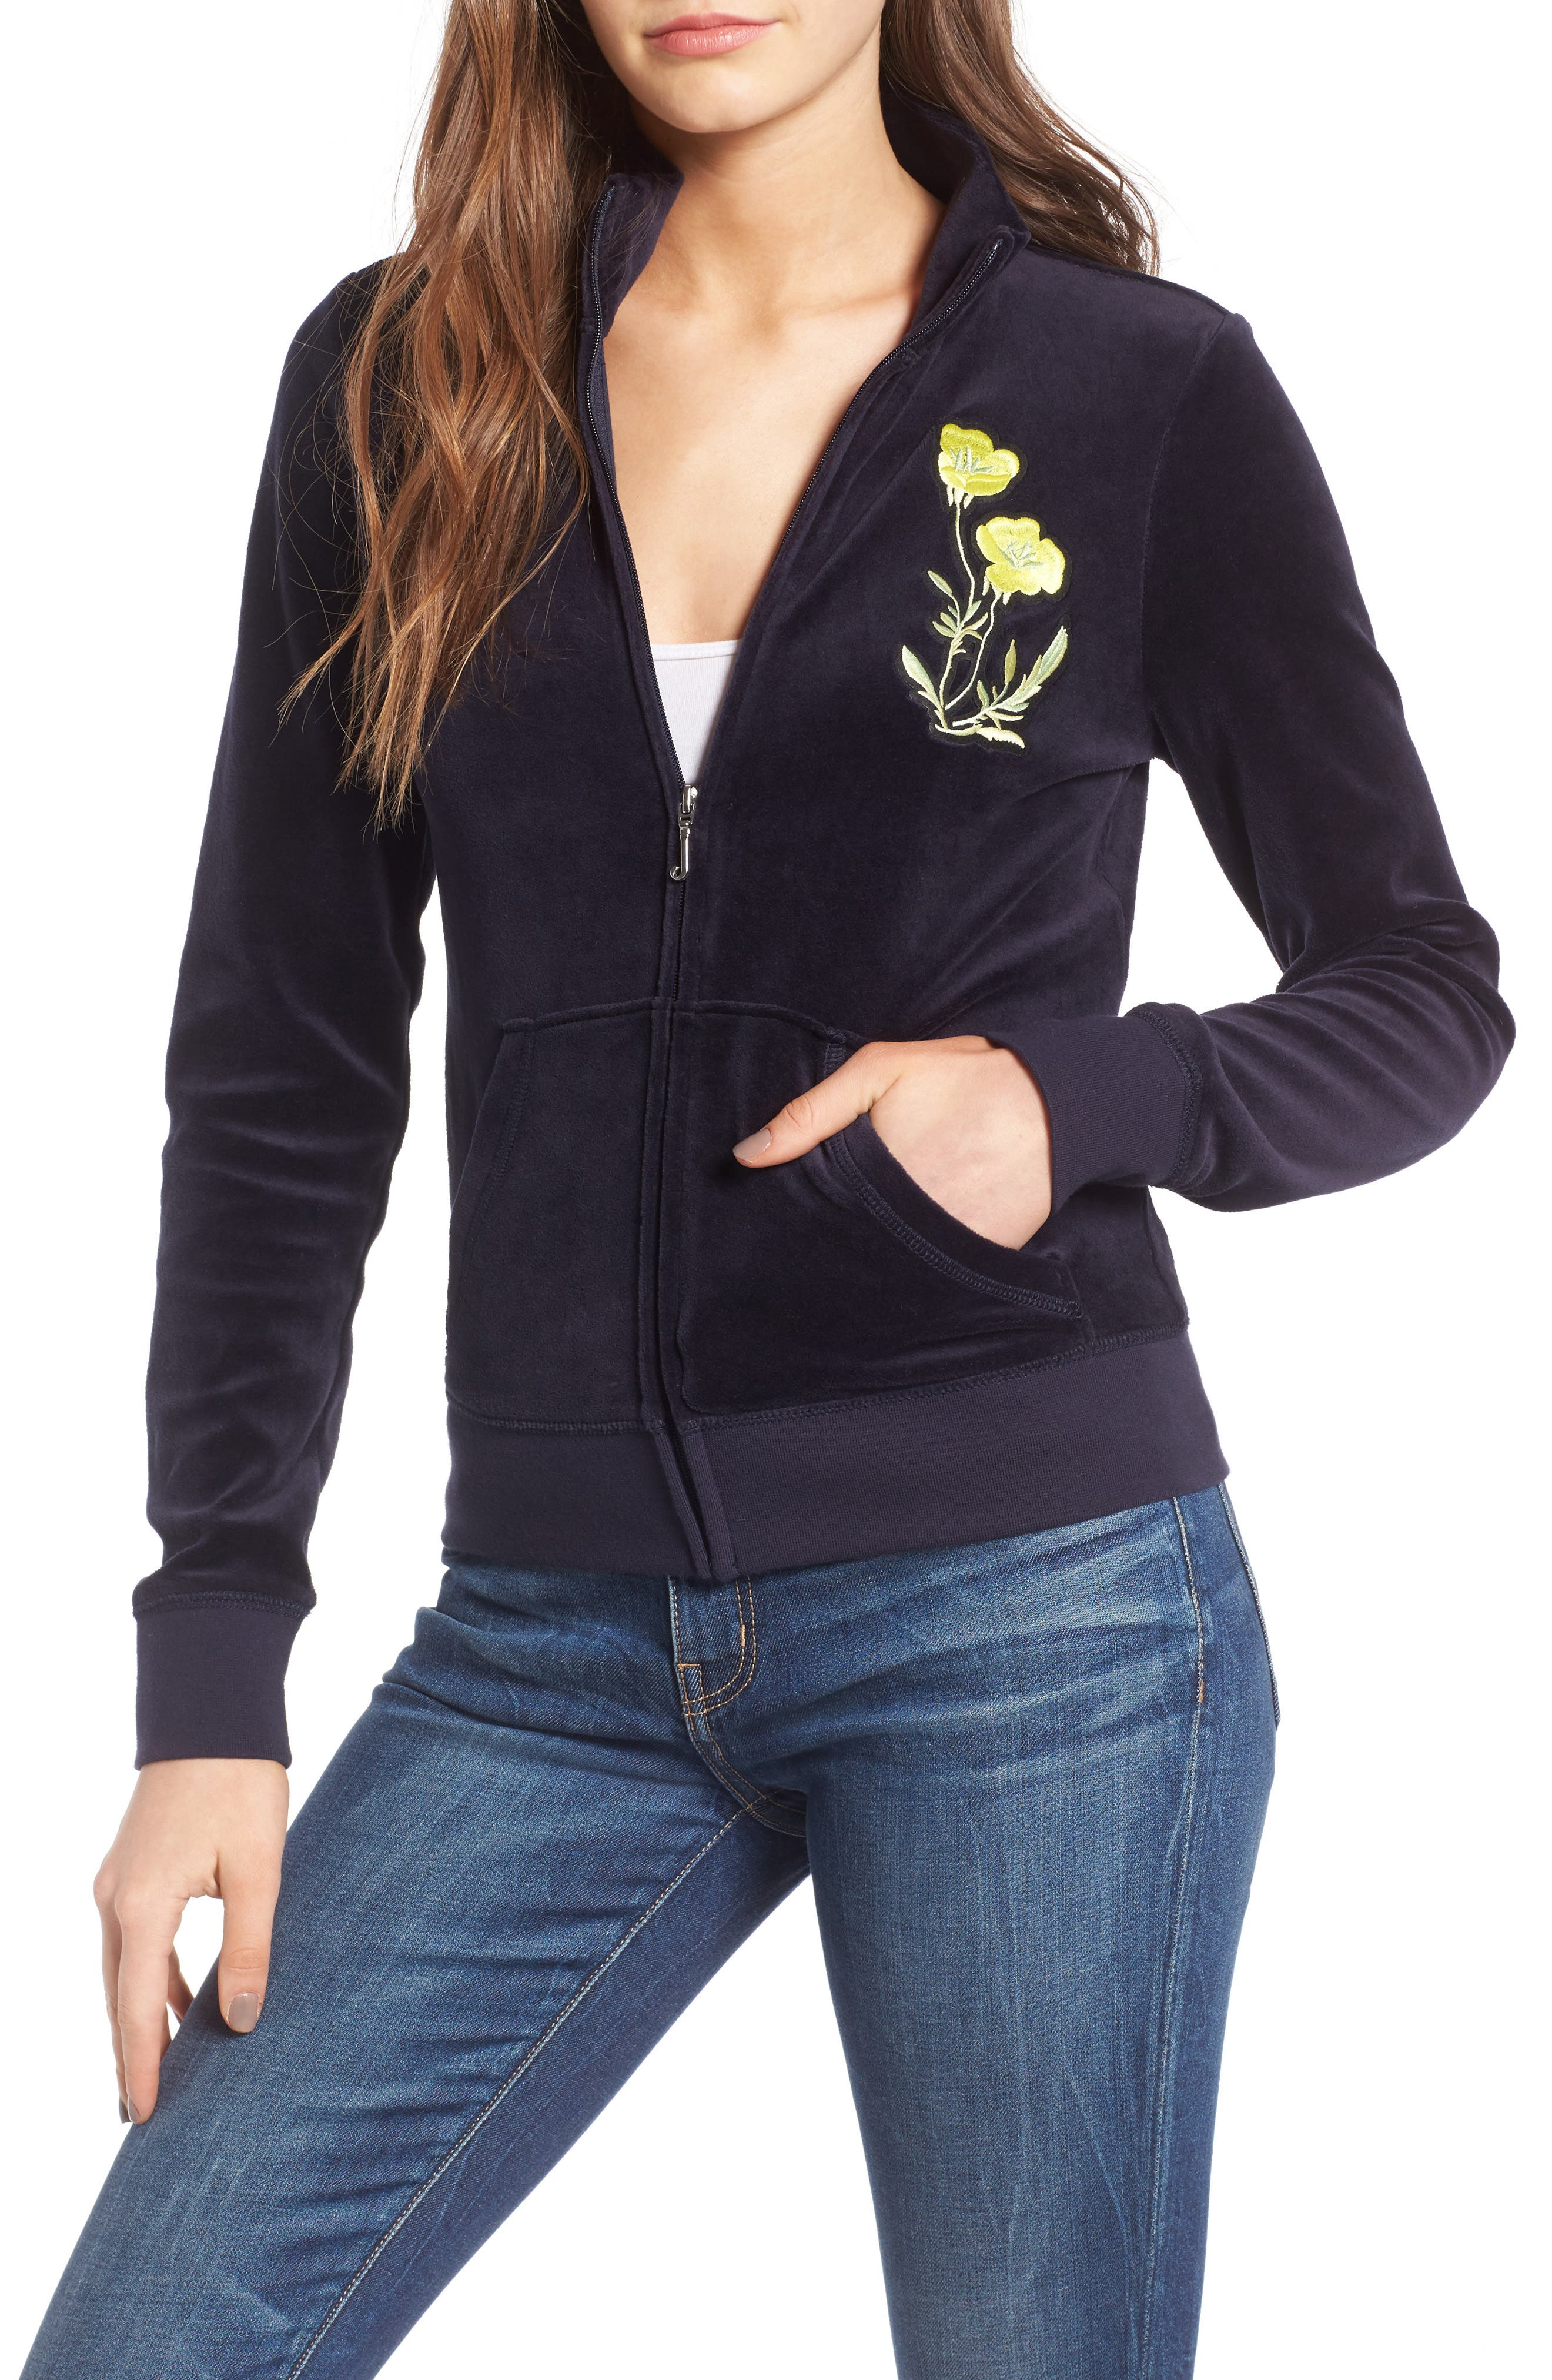 Alternate Image 1 Selected - Juicy Couture Pretty Thing Fairfax Velour Track Jacket